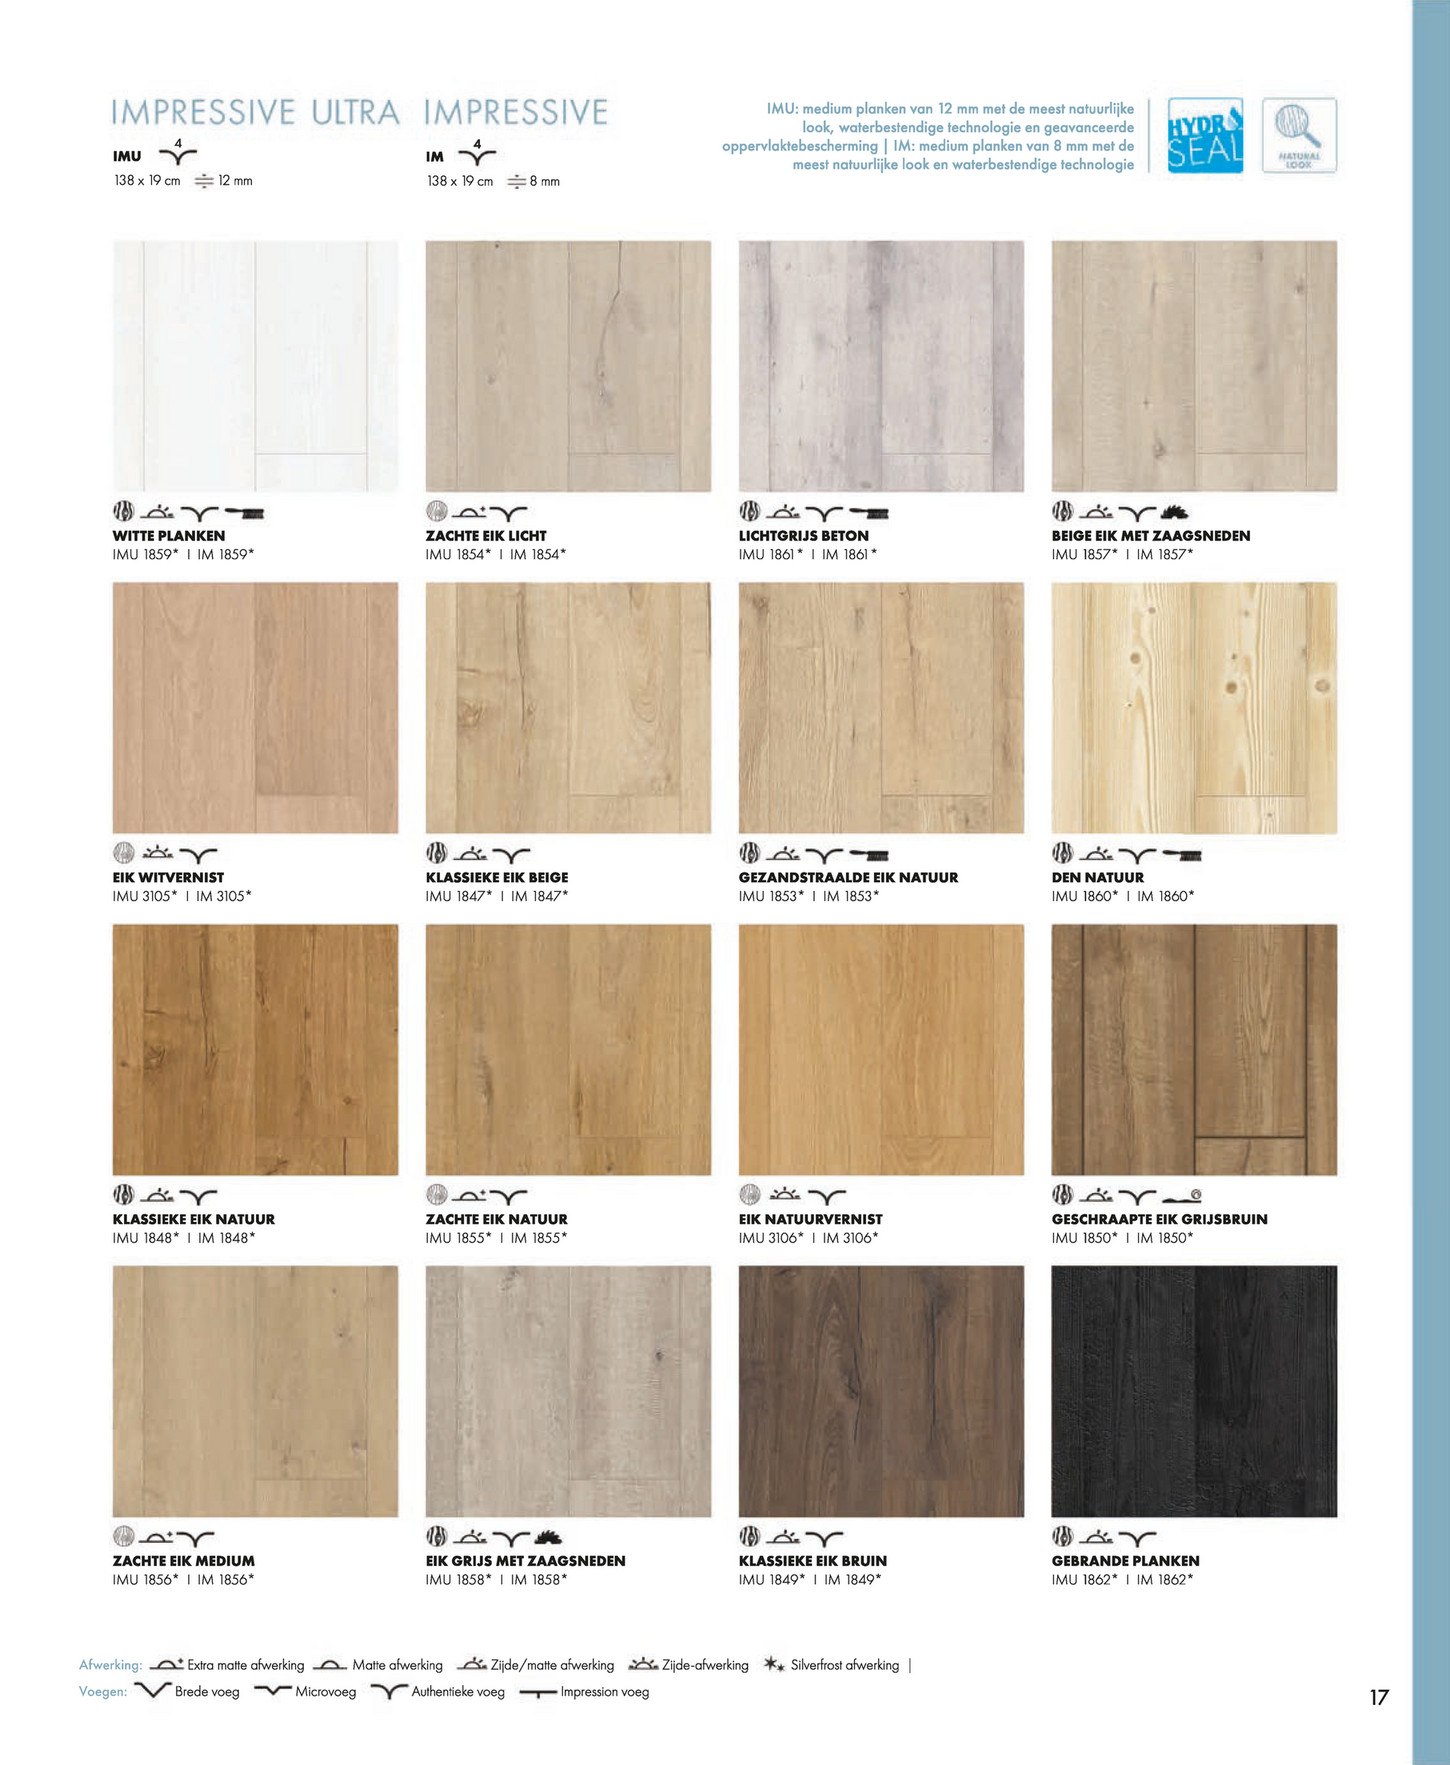 carpetright quick step laminate brochure belgium. Black Bedroom Furniture Sets. Home Design Ideas